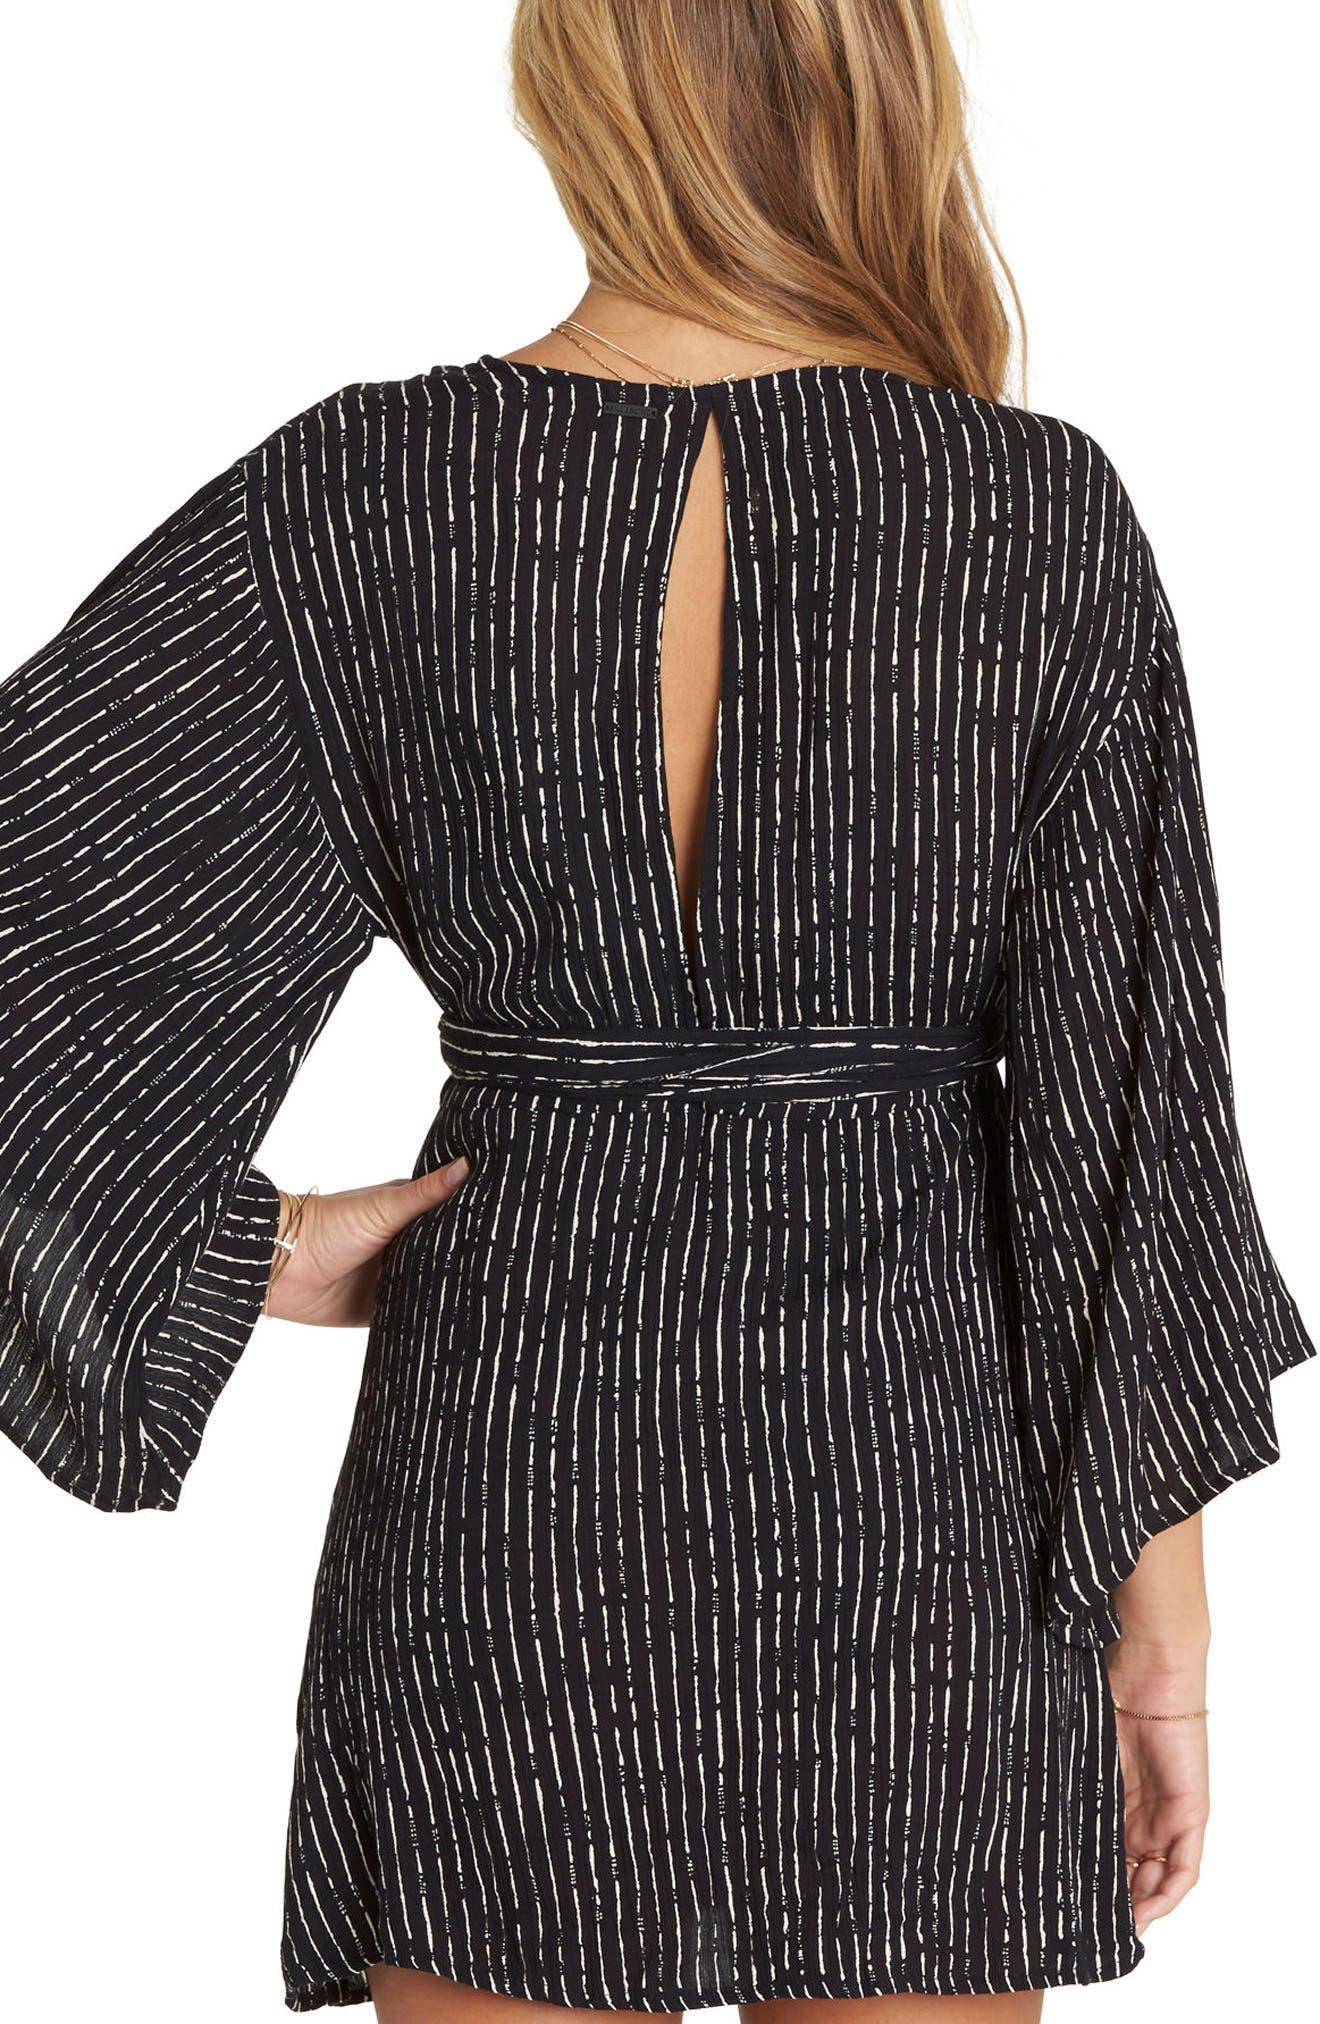 BILLABONG, Relax On High Plunging Dress, Alternate thumbnail 2, color, 001